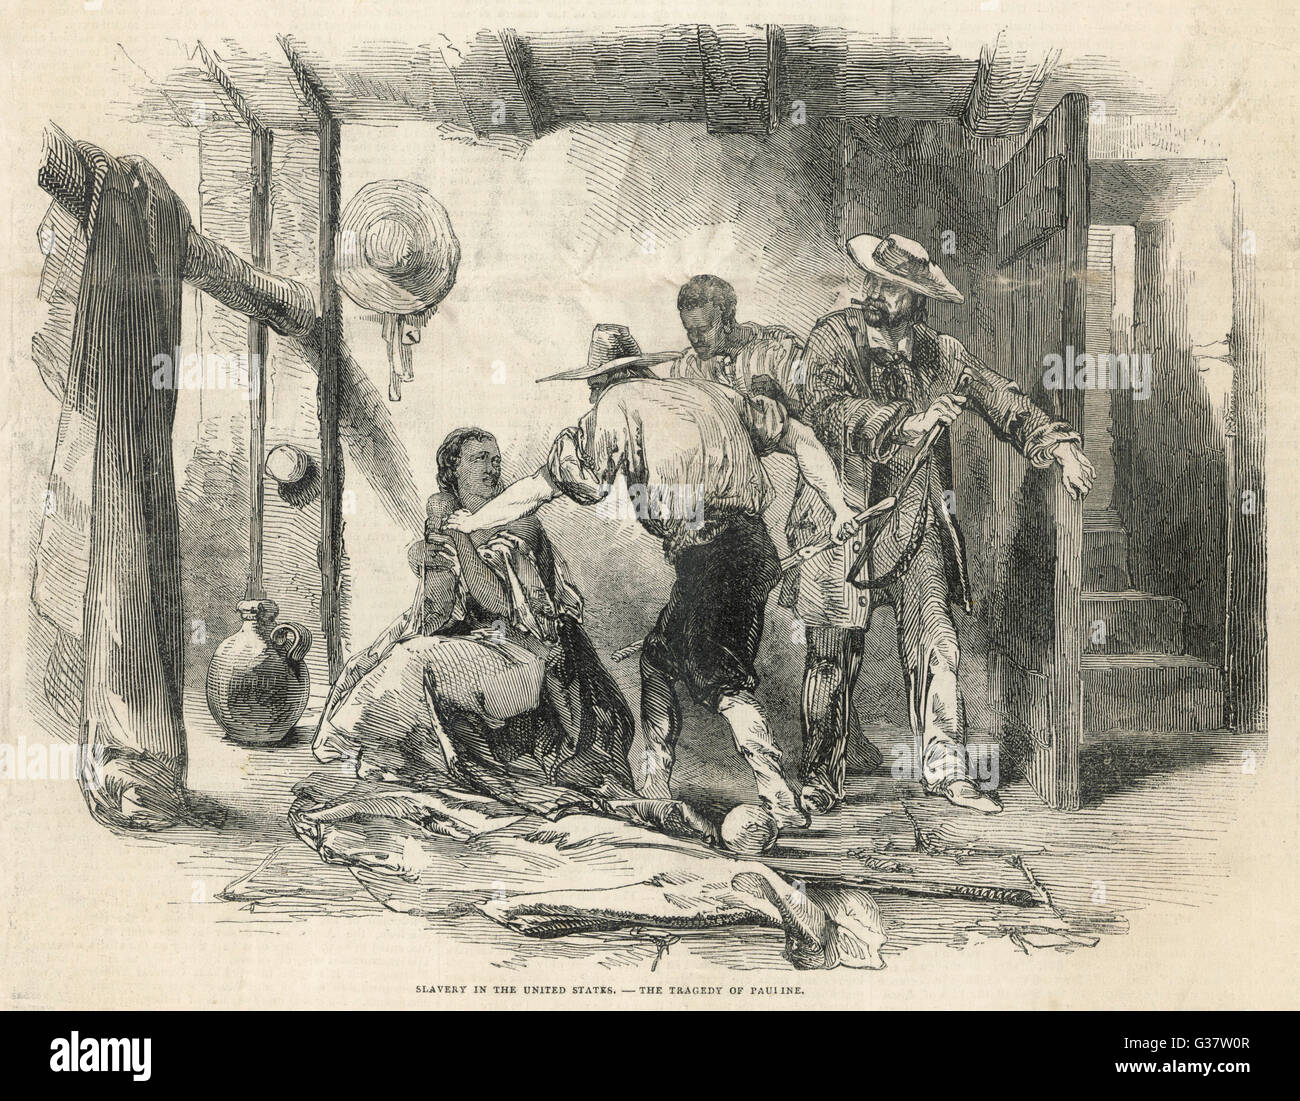 masculinity slavery in the united states and Masculinity: slavery in the united states things fall apart was written in the 1890s, when whites went to nigeria the novel shows the clash between the white's.